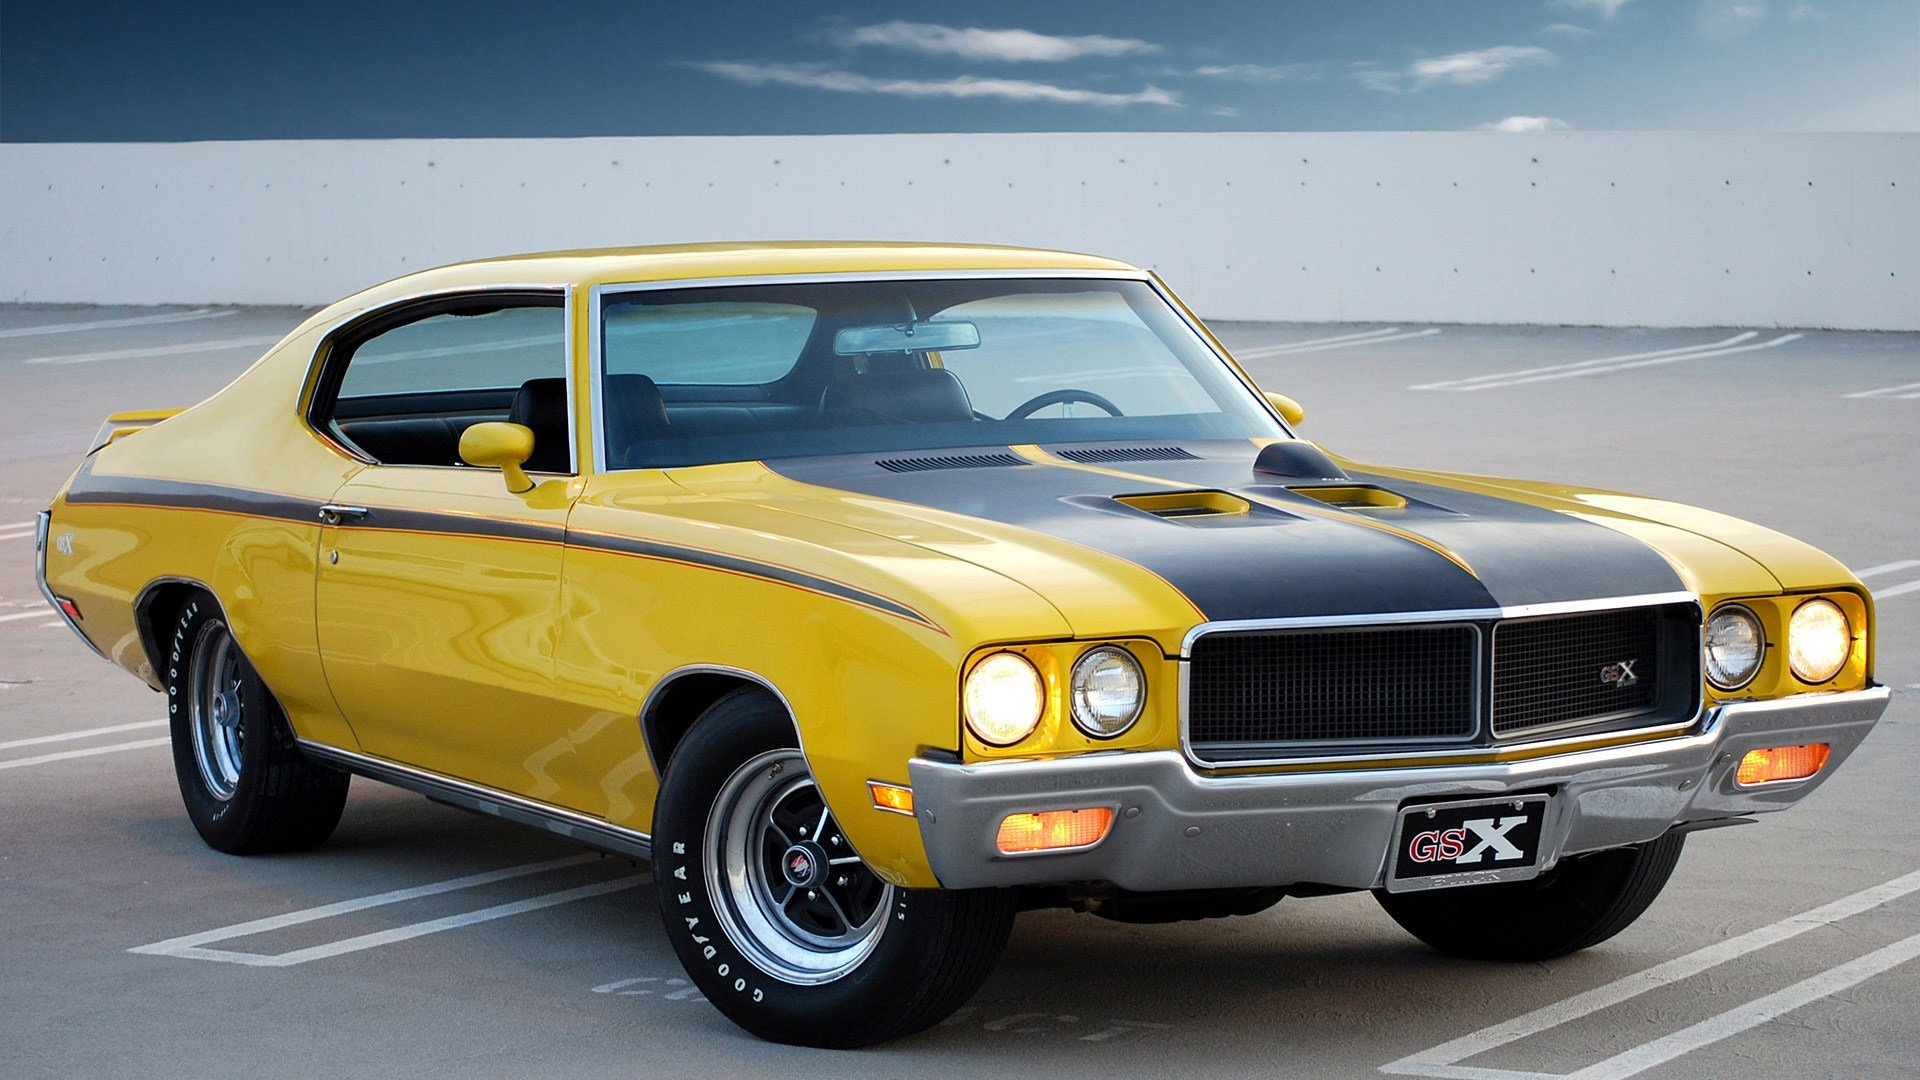 Latest 1970 Buick Gsx Wallpapers Hd Images Wsupercars Free Download